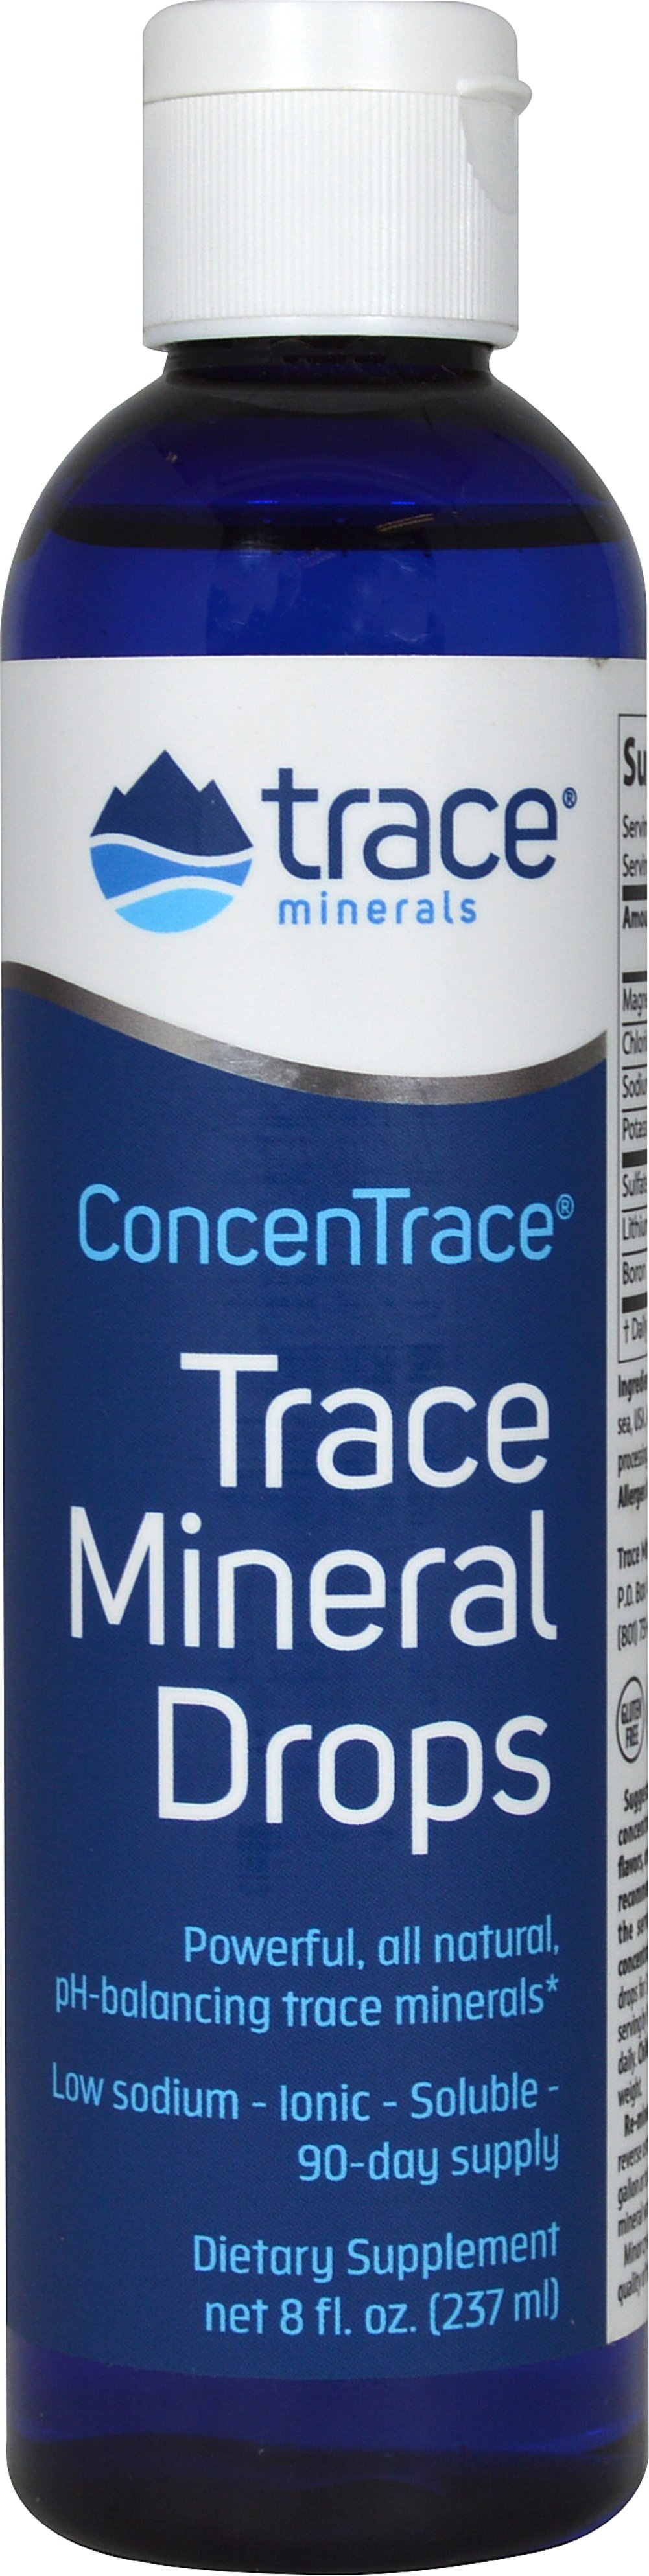 Concentrace Trace Minerals <p><b>From the Manufacturer's Label:</b></p>  <p>ConcenTrace® Trace Mineral Drops is a natural mineral concentrate that is so concentrated that 40 drops (½ teaspoon) equals the mineral content of ½ cup sea water with 99% sodium removed.  You may expect a wide spectrum of nutritional benefits. For regular or sodium restricted diets.</p> <p>Manufactured by Trace Minerals.</p> 8 oz Liquid  $16.29